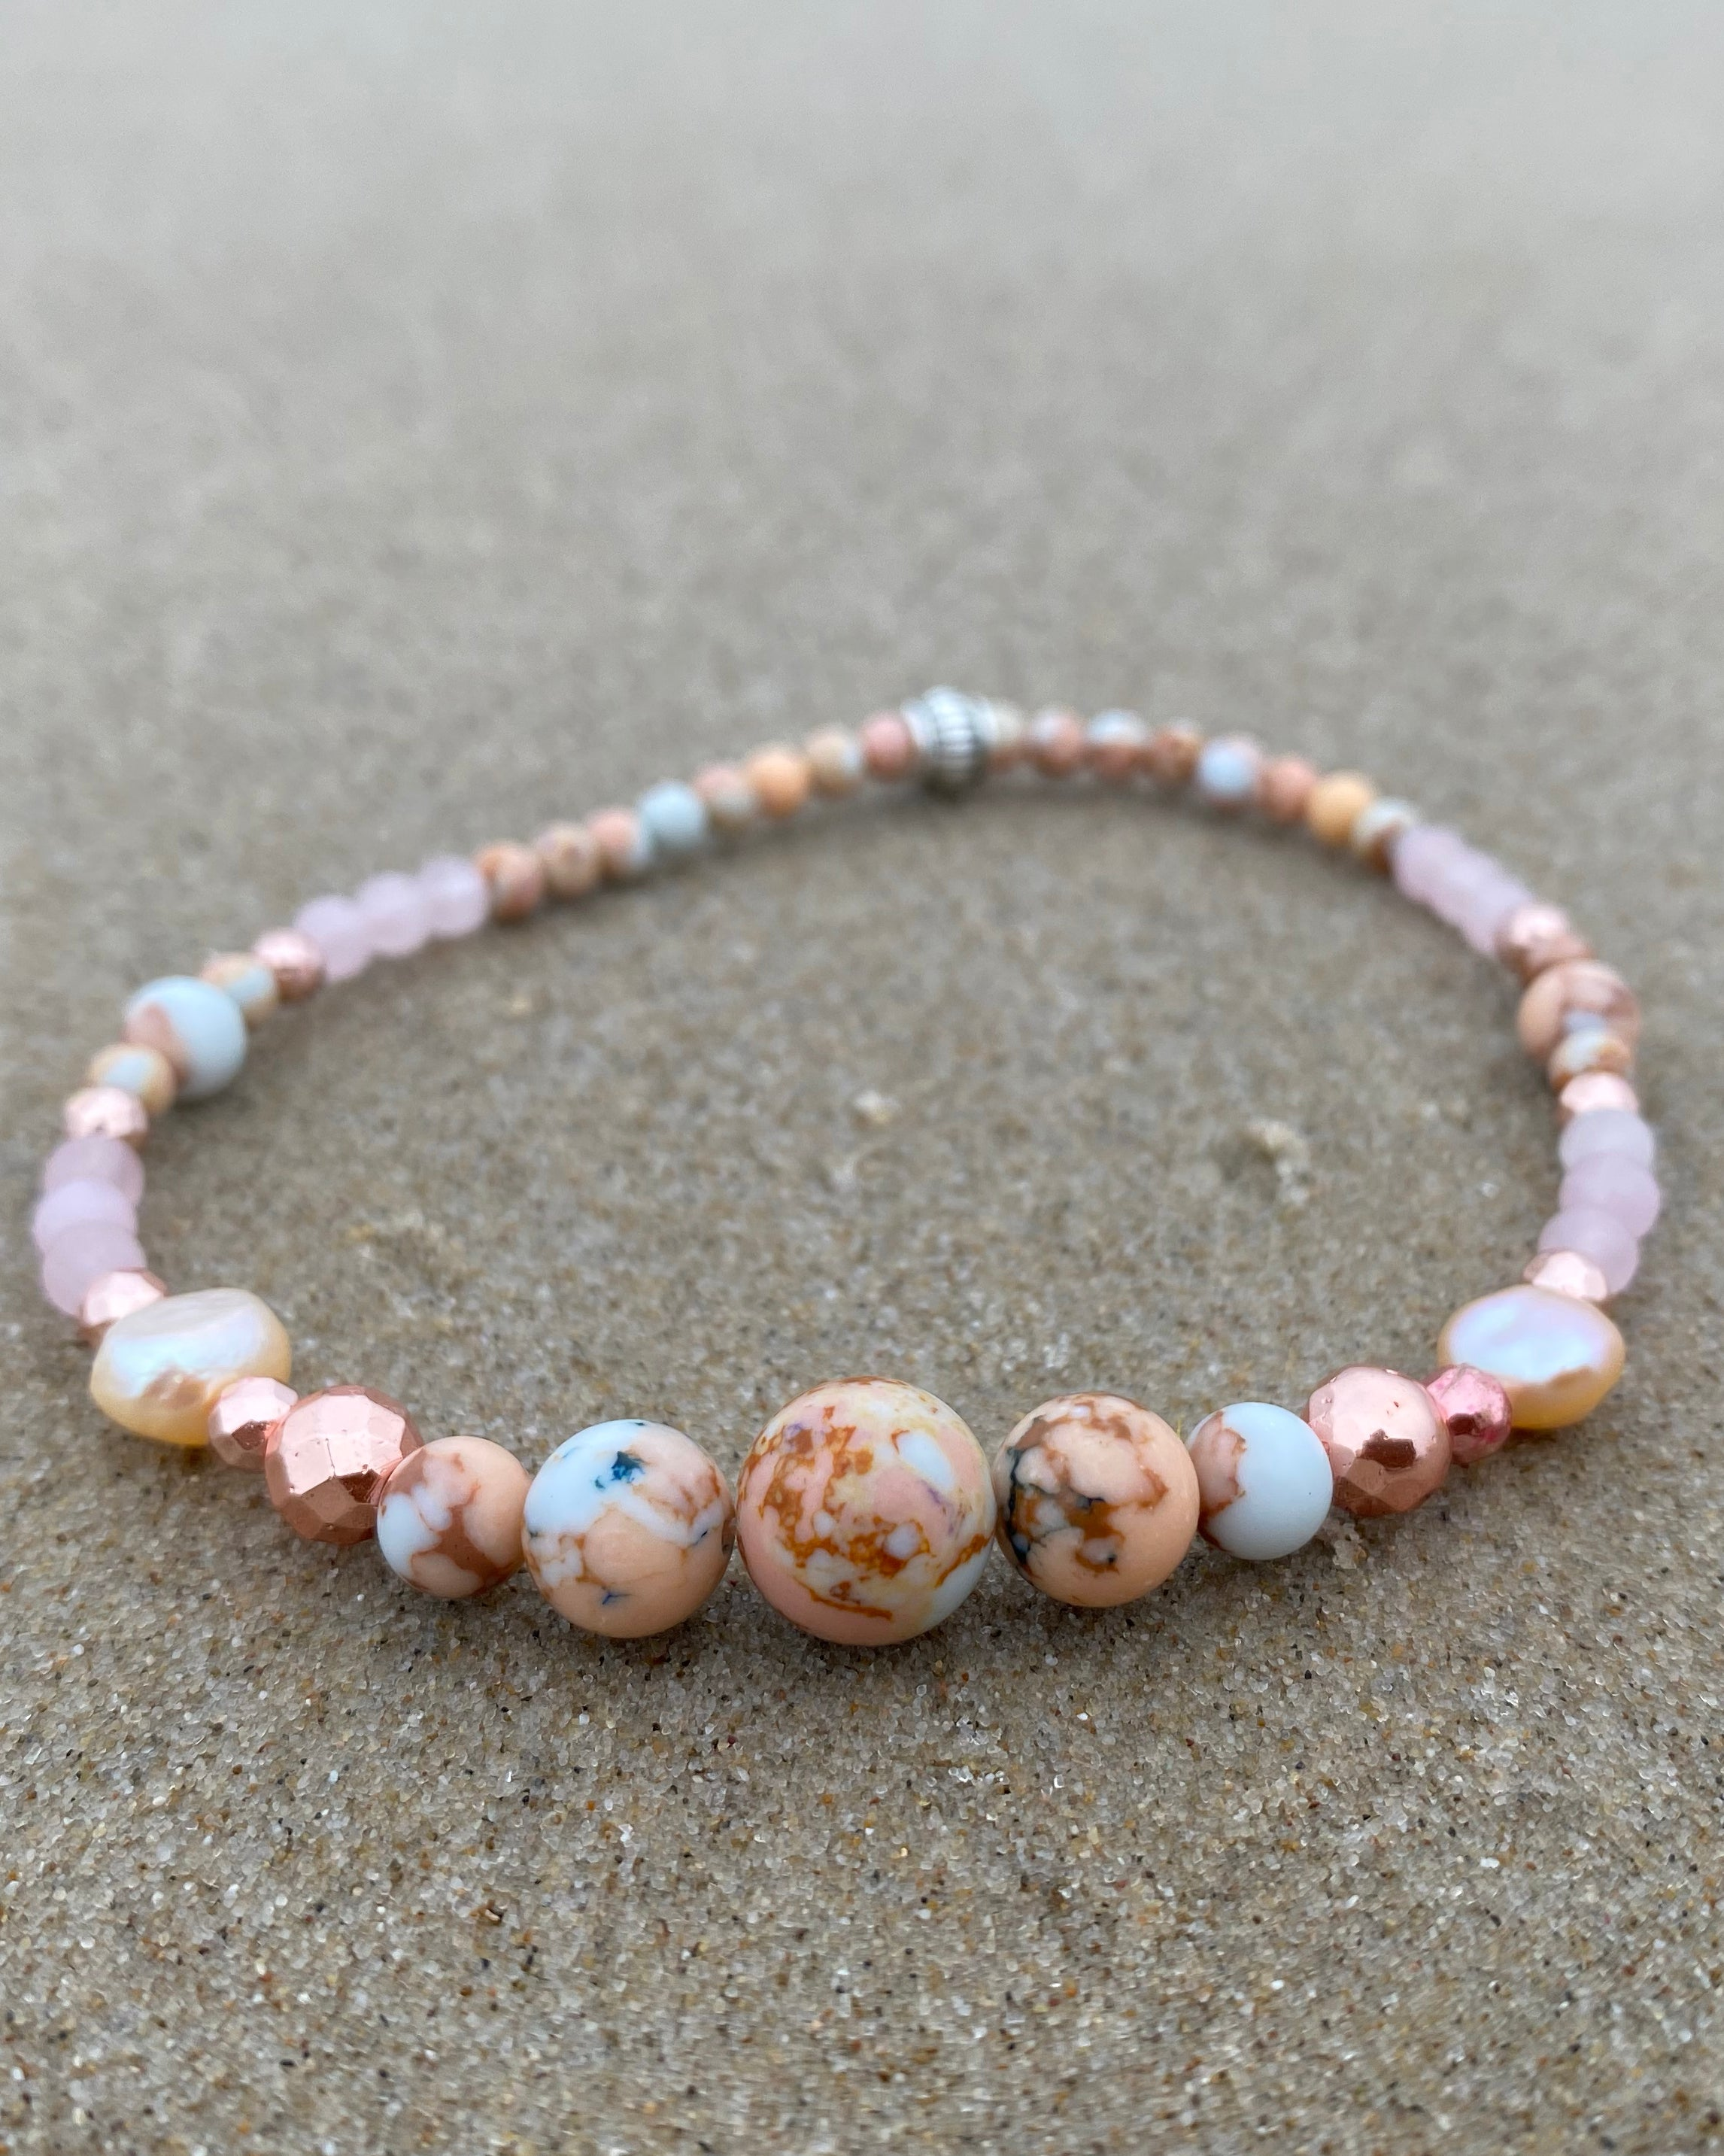 Intentional jewellery hand made in Byron Bay. Boho style natural crystal anklet featuring rose quartz, rhodochrosite, hematite and freshwater pearl beads strung on durable jewellers elastic.